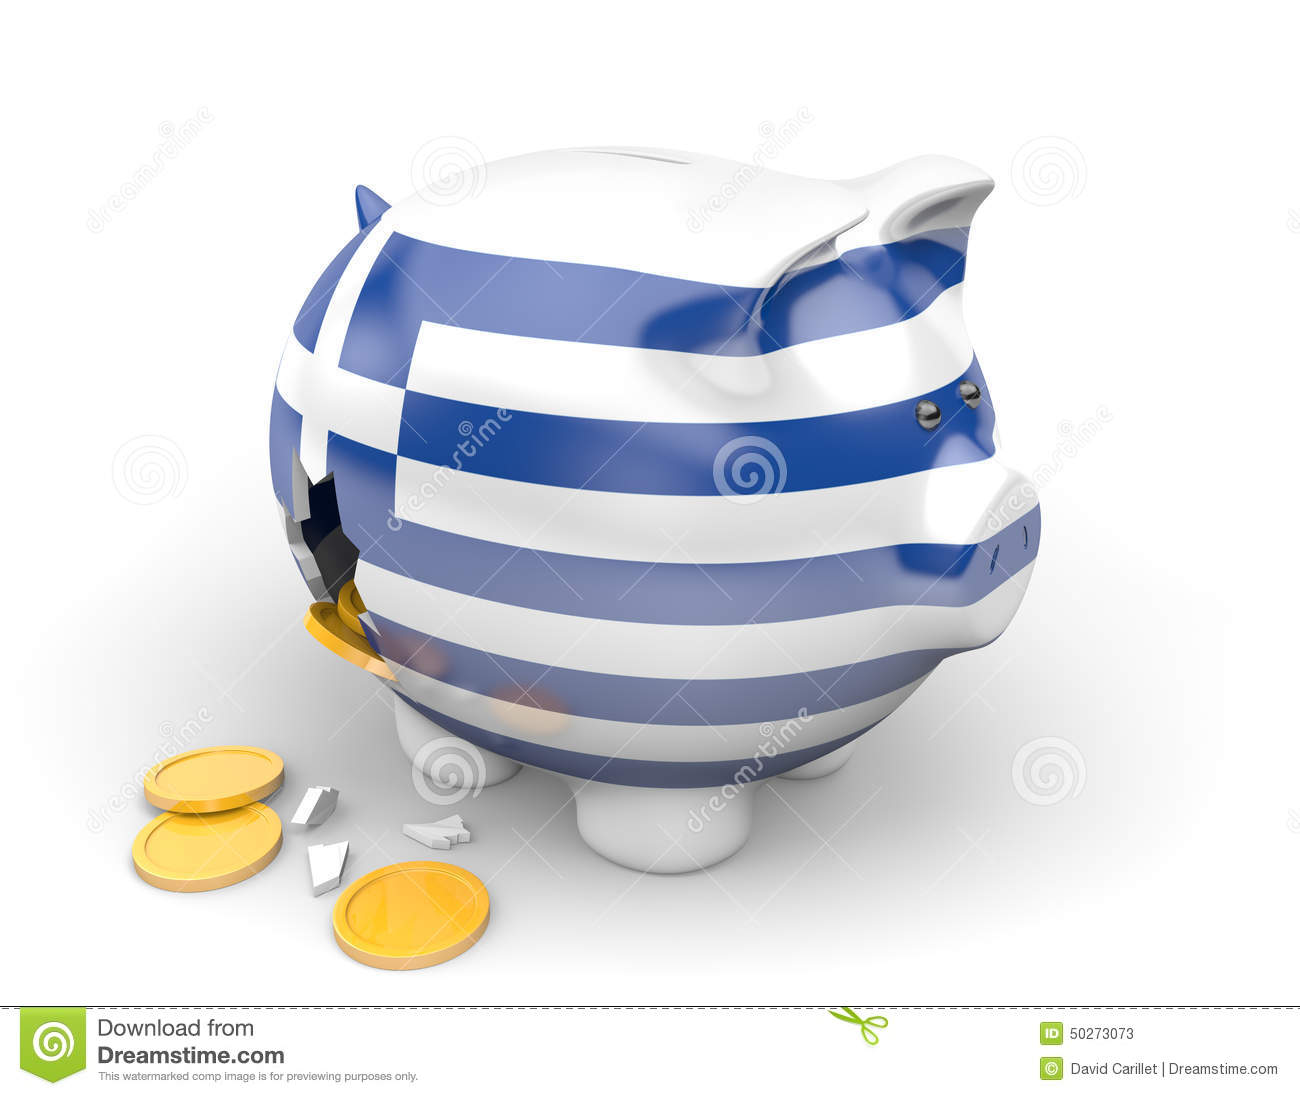 economy and finance concept for bankruptcy unemployment economy and finance concept for bankruptcy unemployment and national debt crisis